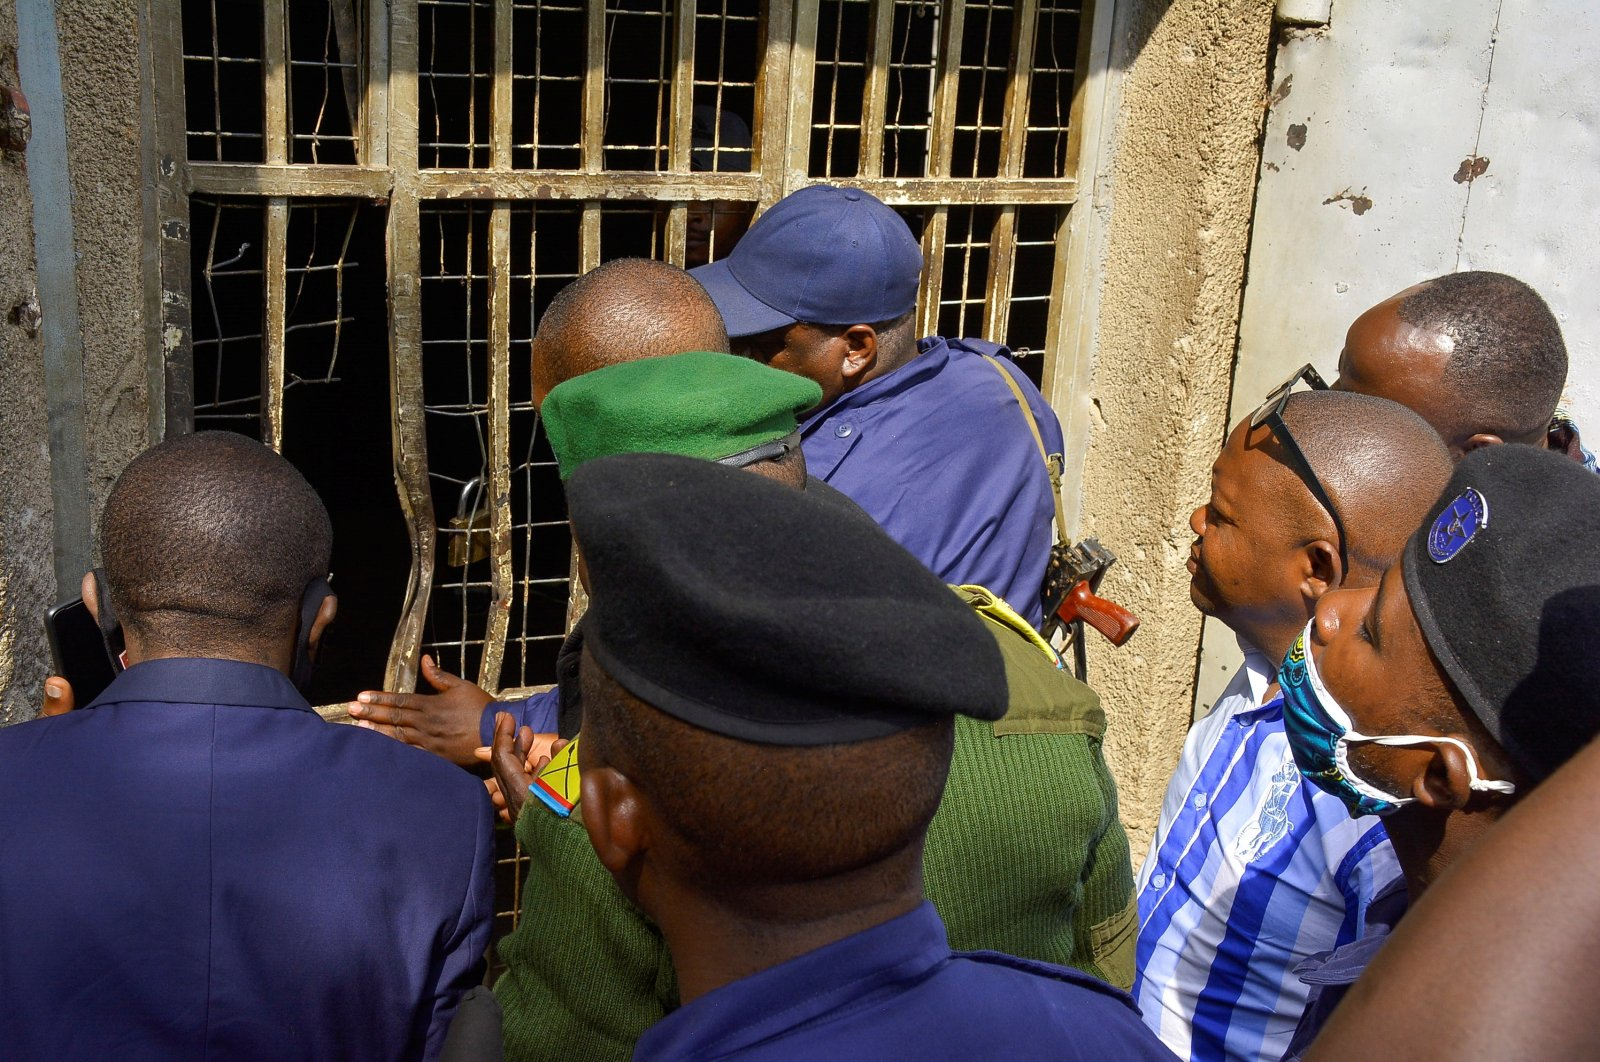 Congolese security officers look at a broken window at the Kangbayi central prison in Beni, Democratic Republic of Congo, Oct. 20, 2020. (Reuters Photo)